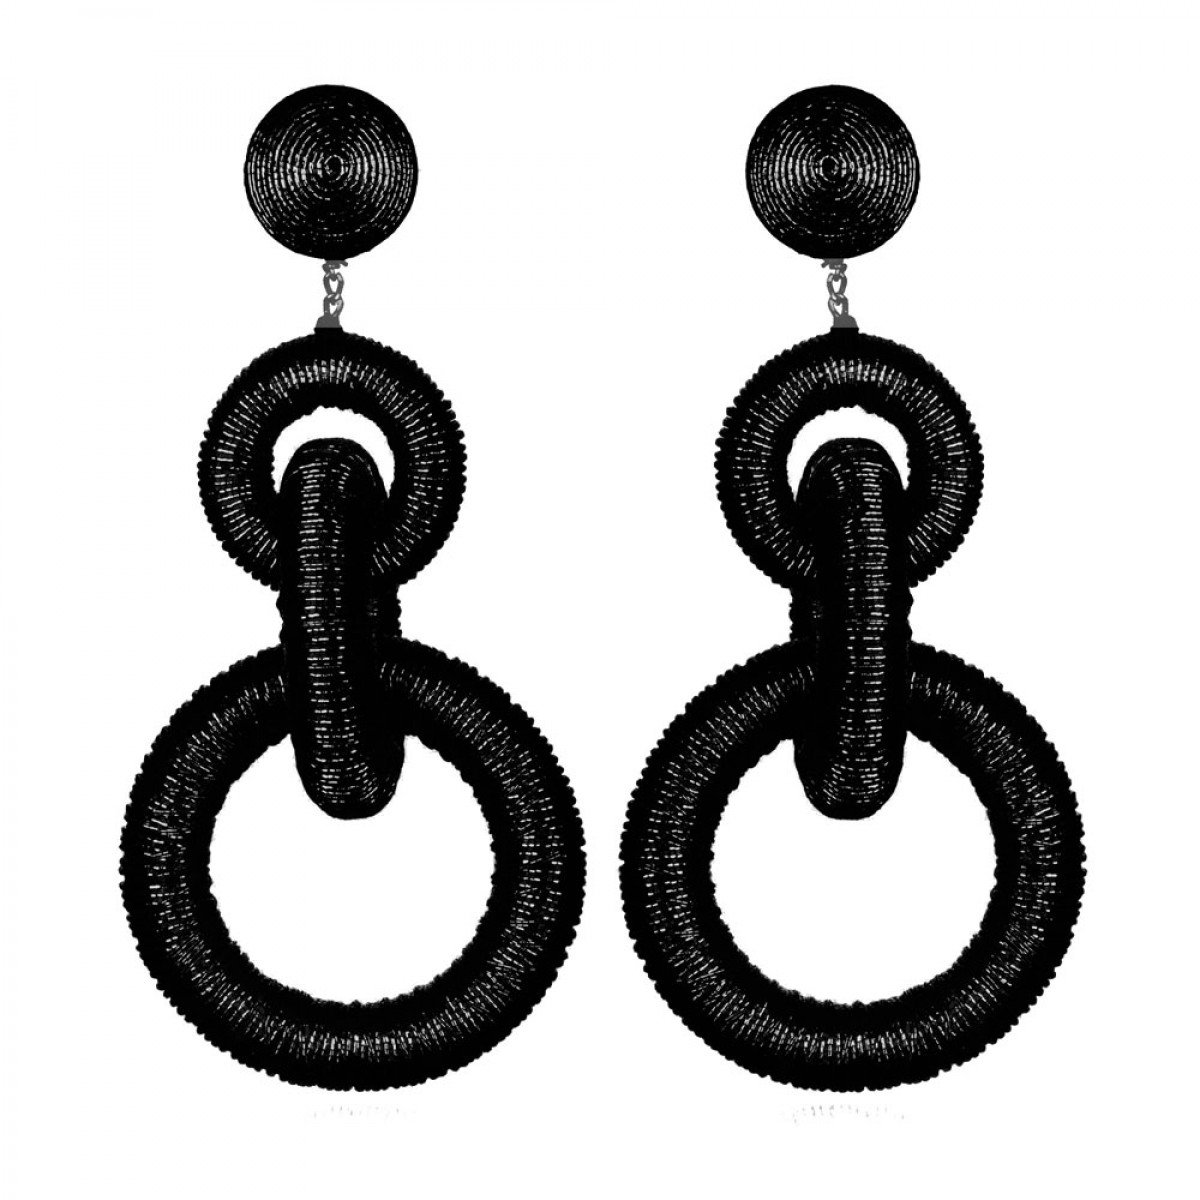 Black Three Tier Hoop Earrings by SUZANNA DAI